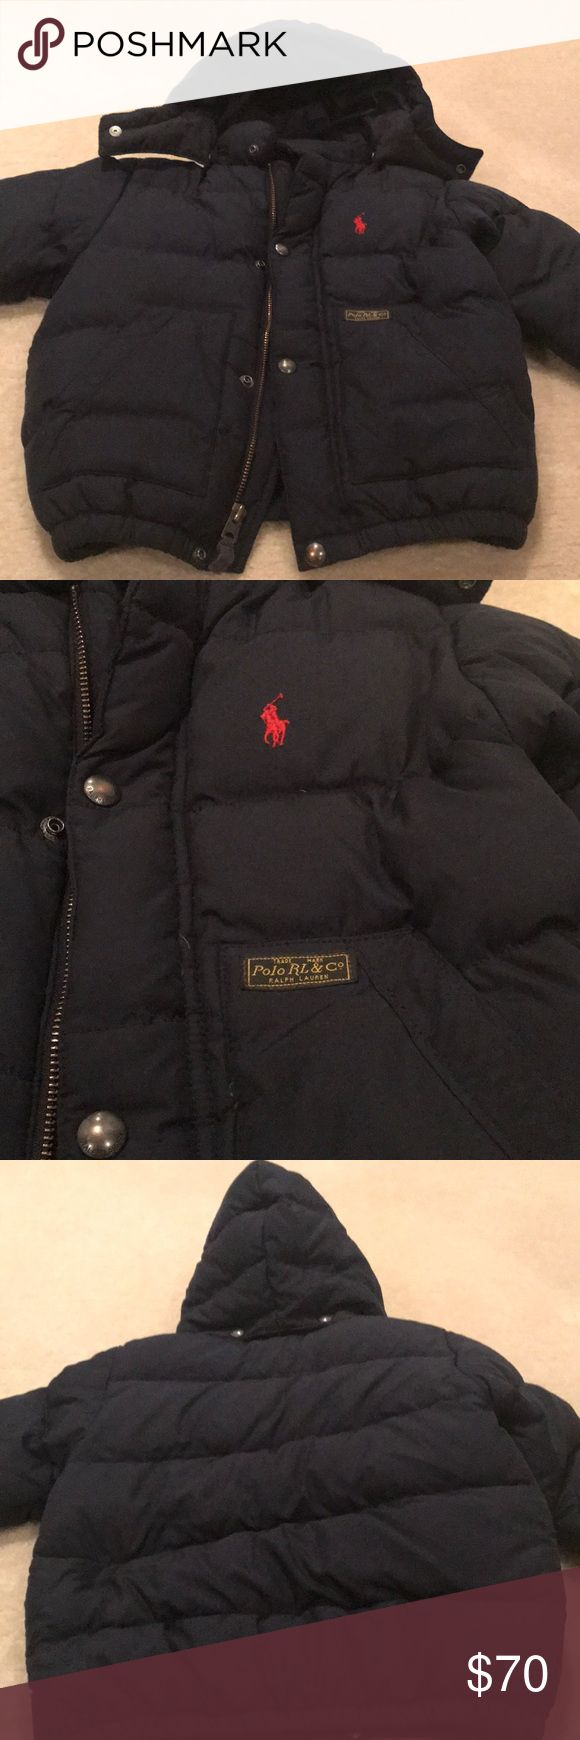 Polo Ralph Lauren Baby Boy Winter Coat EUC. No stains rips or holes. Super clean Pet & smoke free home. Polo by Ralph Lauren Jackets & Coats Puffers